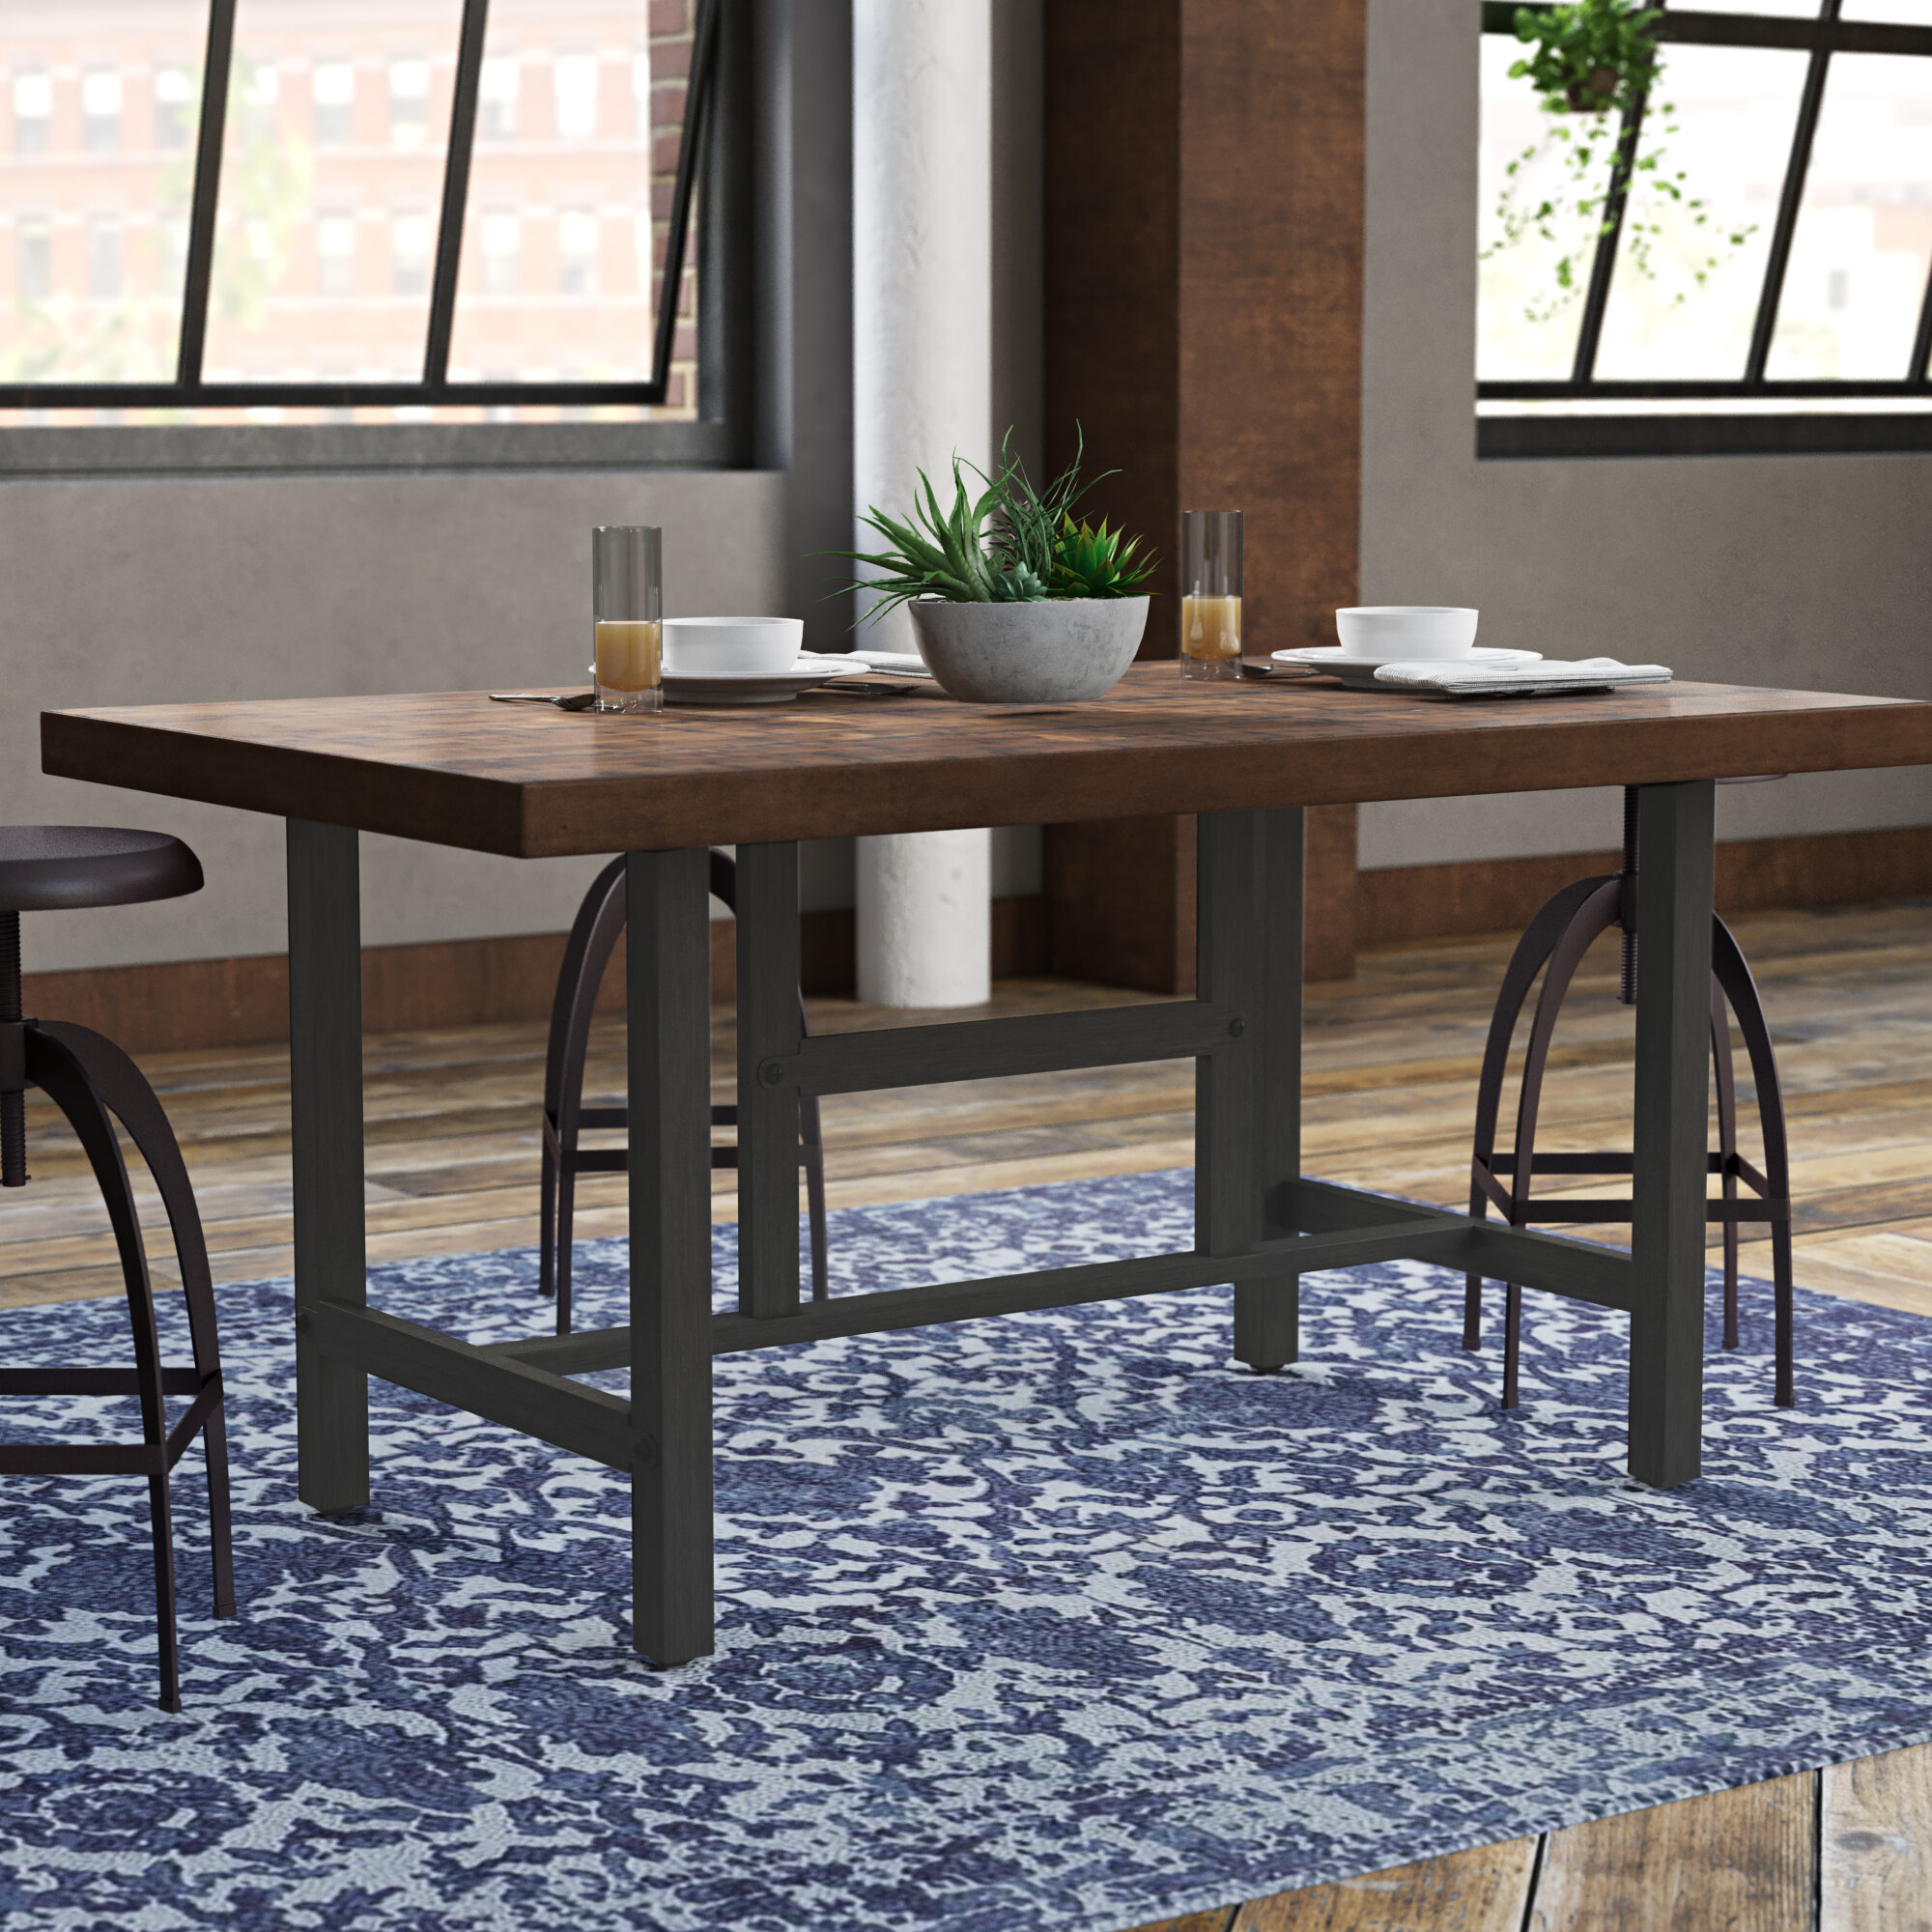 Williston Forge Charline Standard Height Dining Table Reviews Wayfair